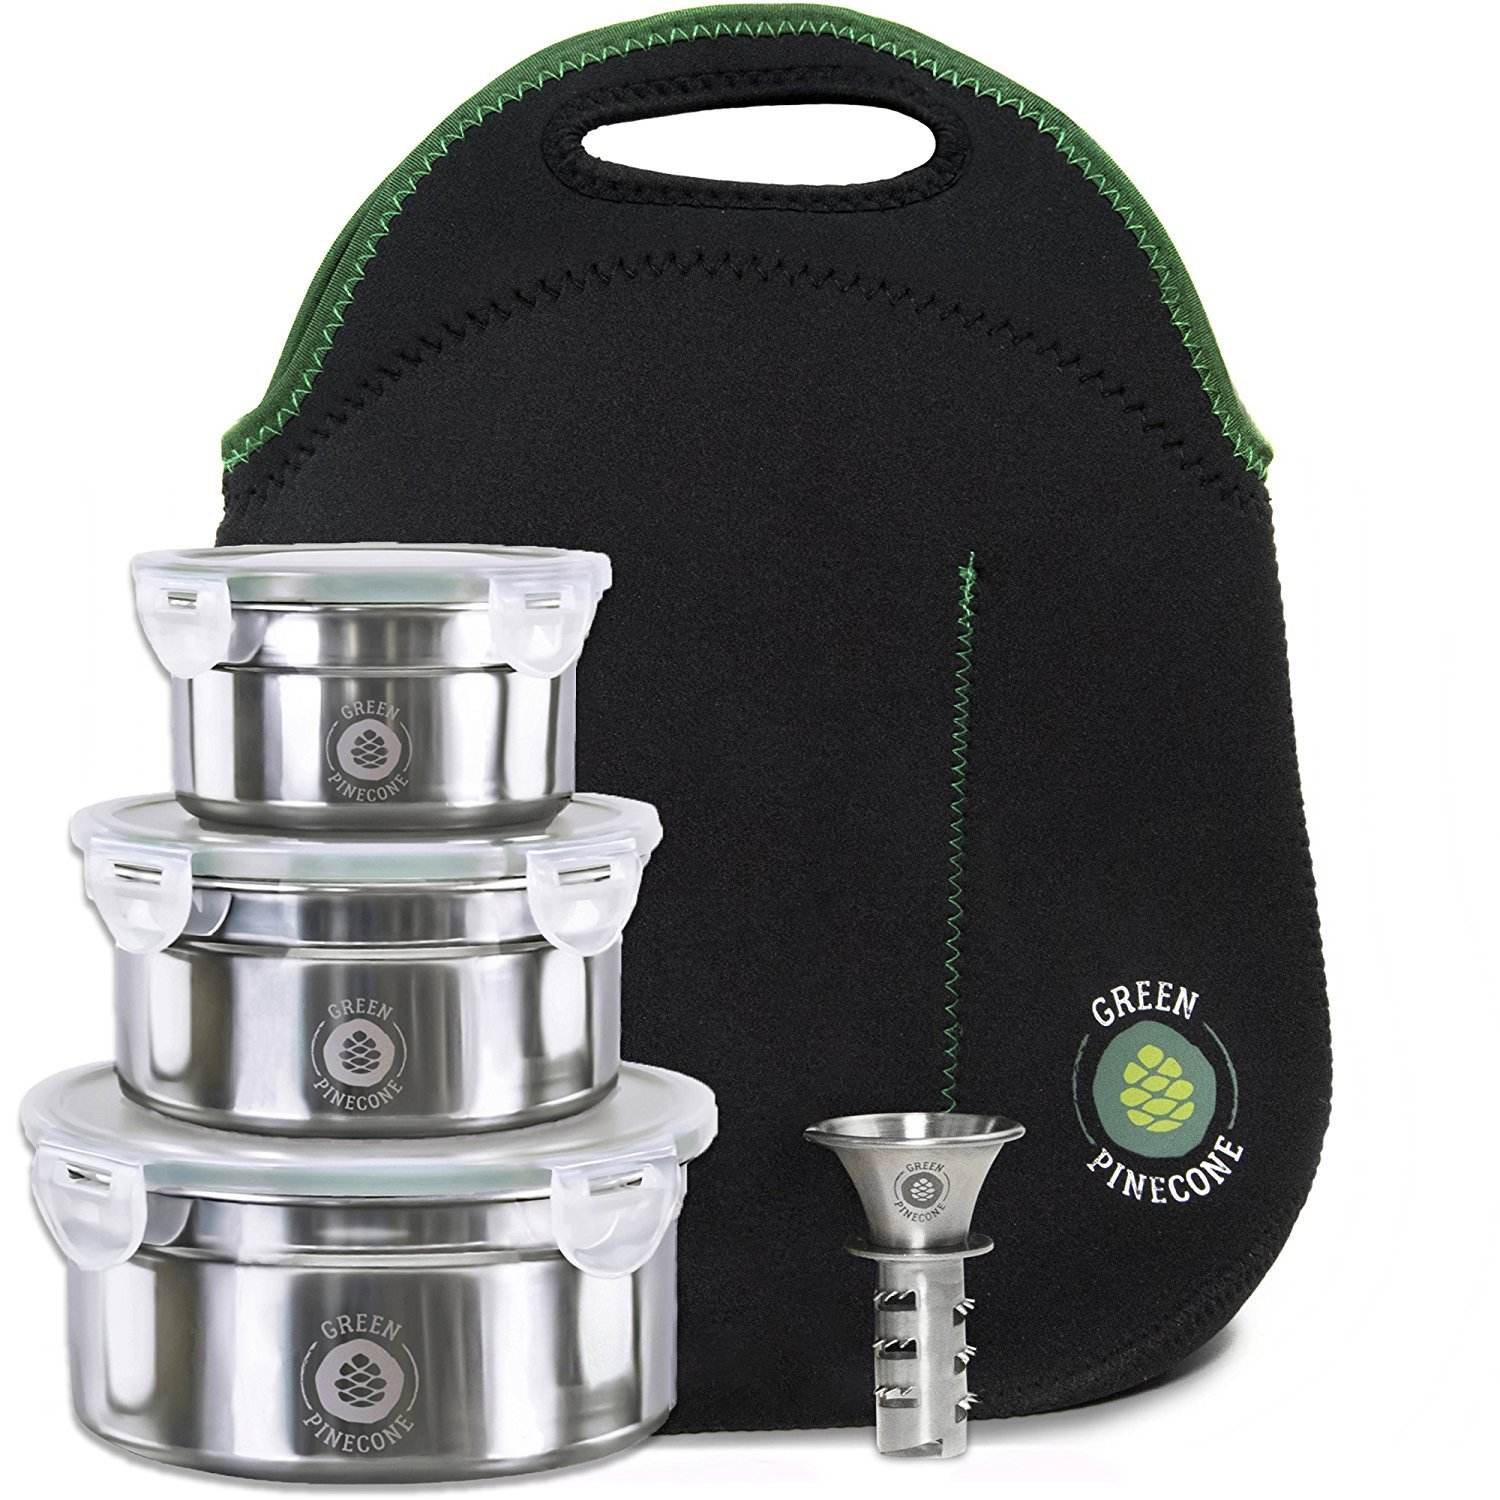 Leakproof Stainless Steel Lunchbox Set. 3 Containers & Thermal Bag: Keep Food Warm or Cool at College, University, Office, School & Travel. Leak Proof Storage. Large, Medium & Small Tins. TWO BONUSES.